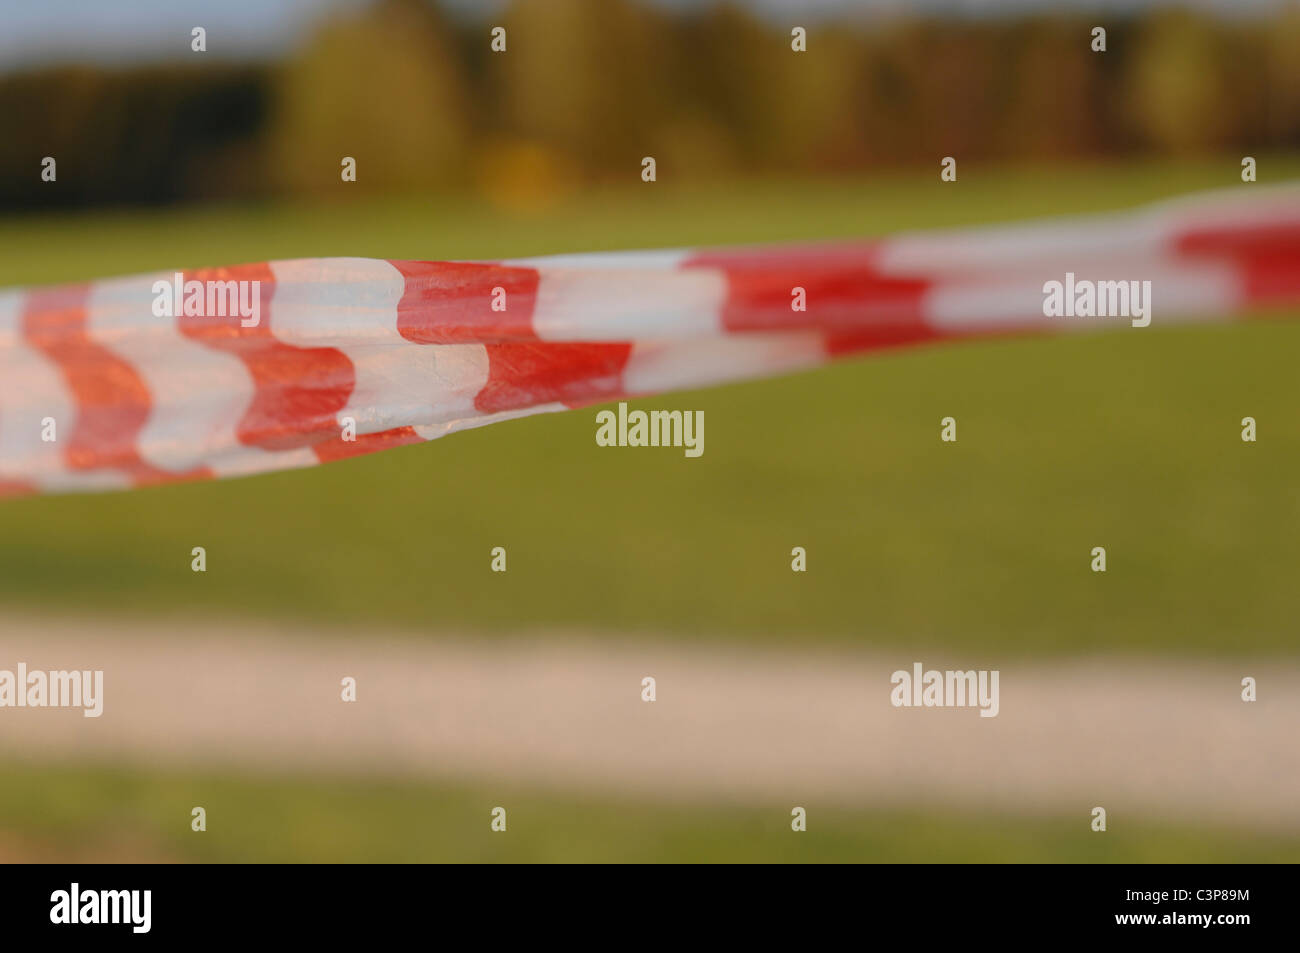 Germany, Barrier tape, white-red, close-up - Stock Image